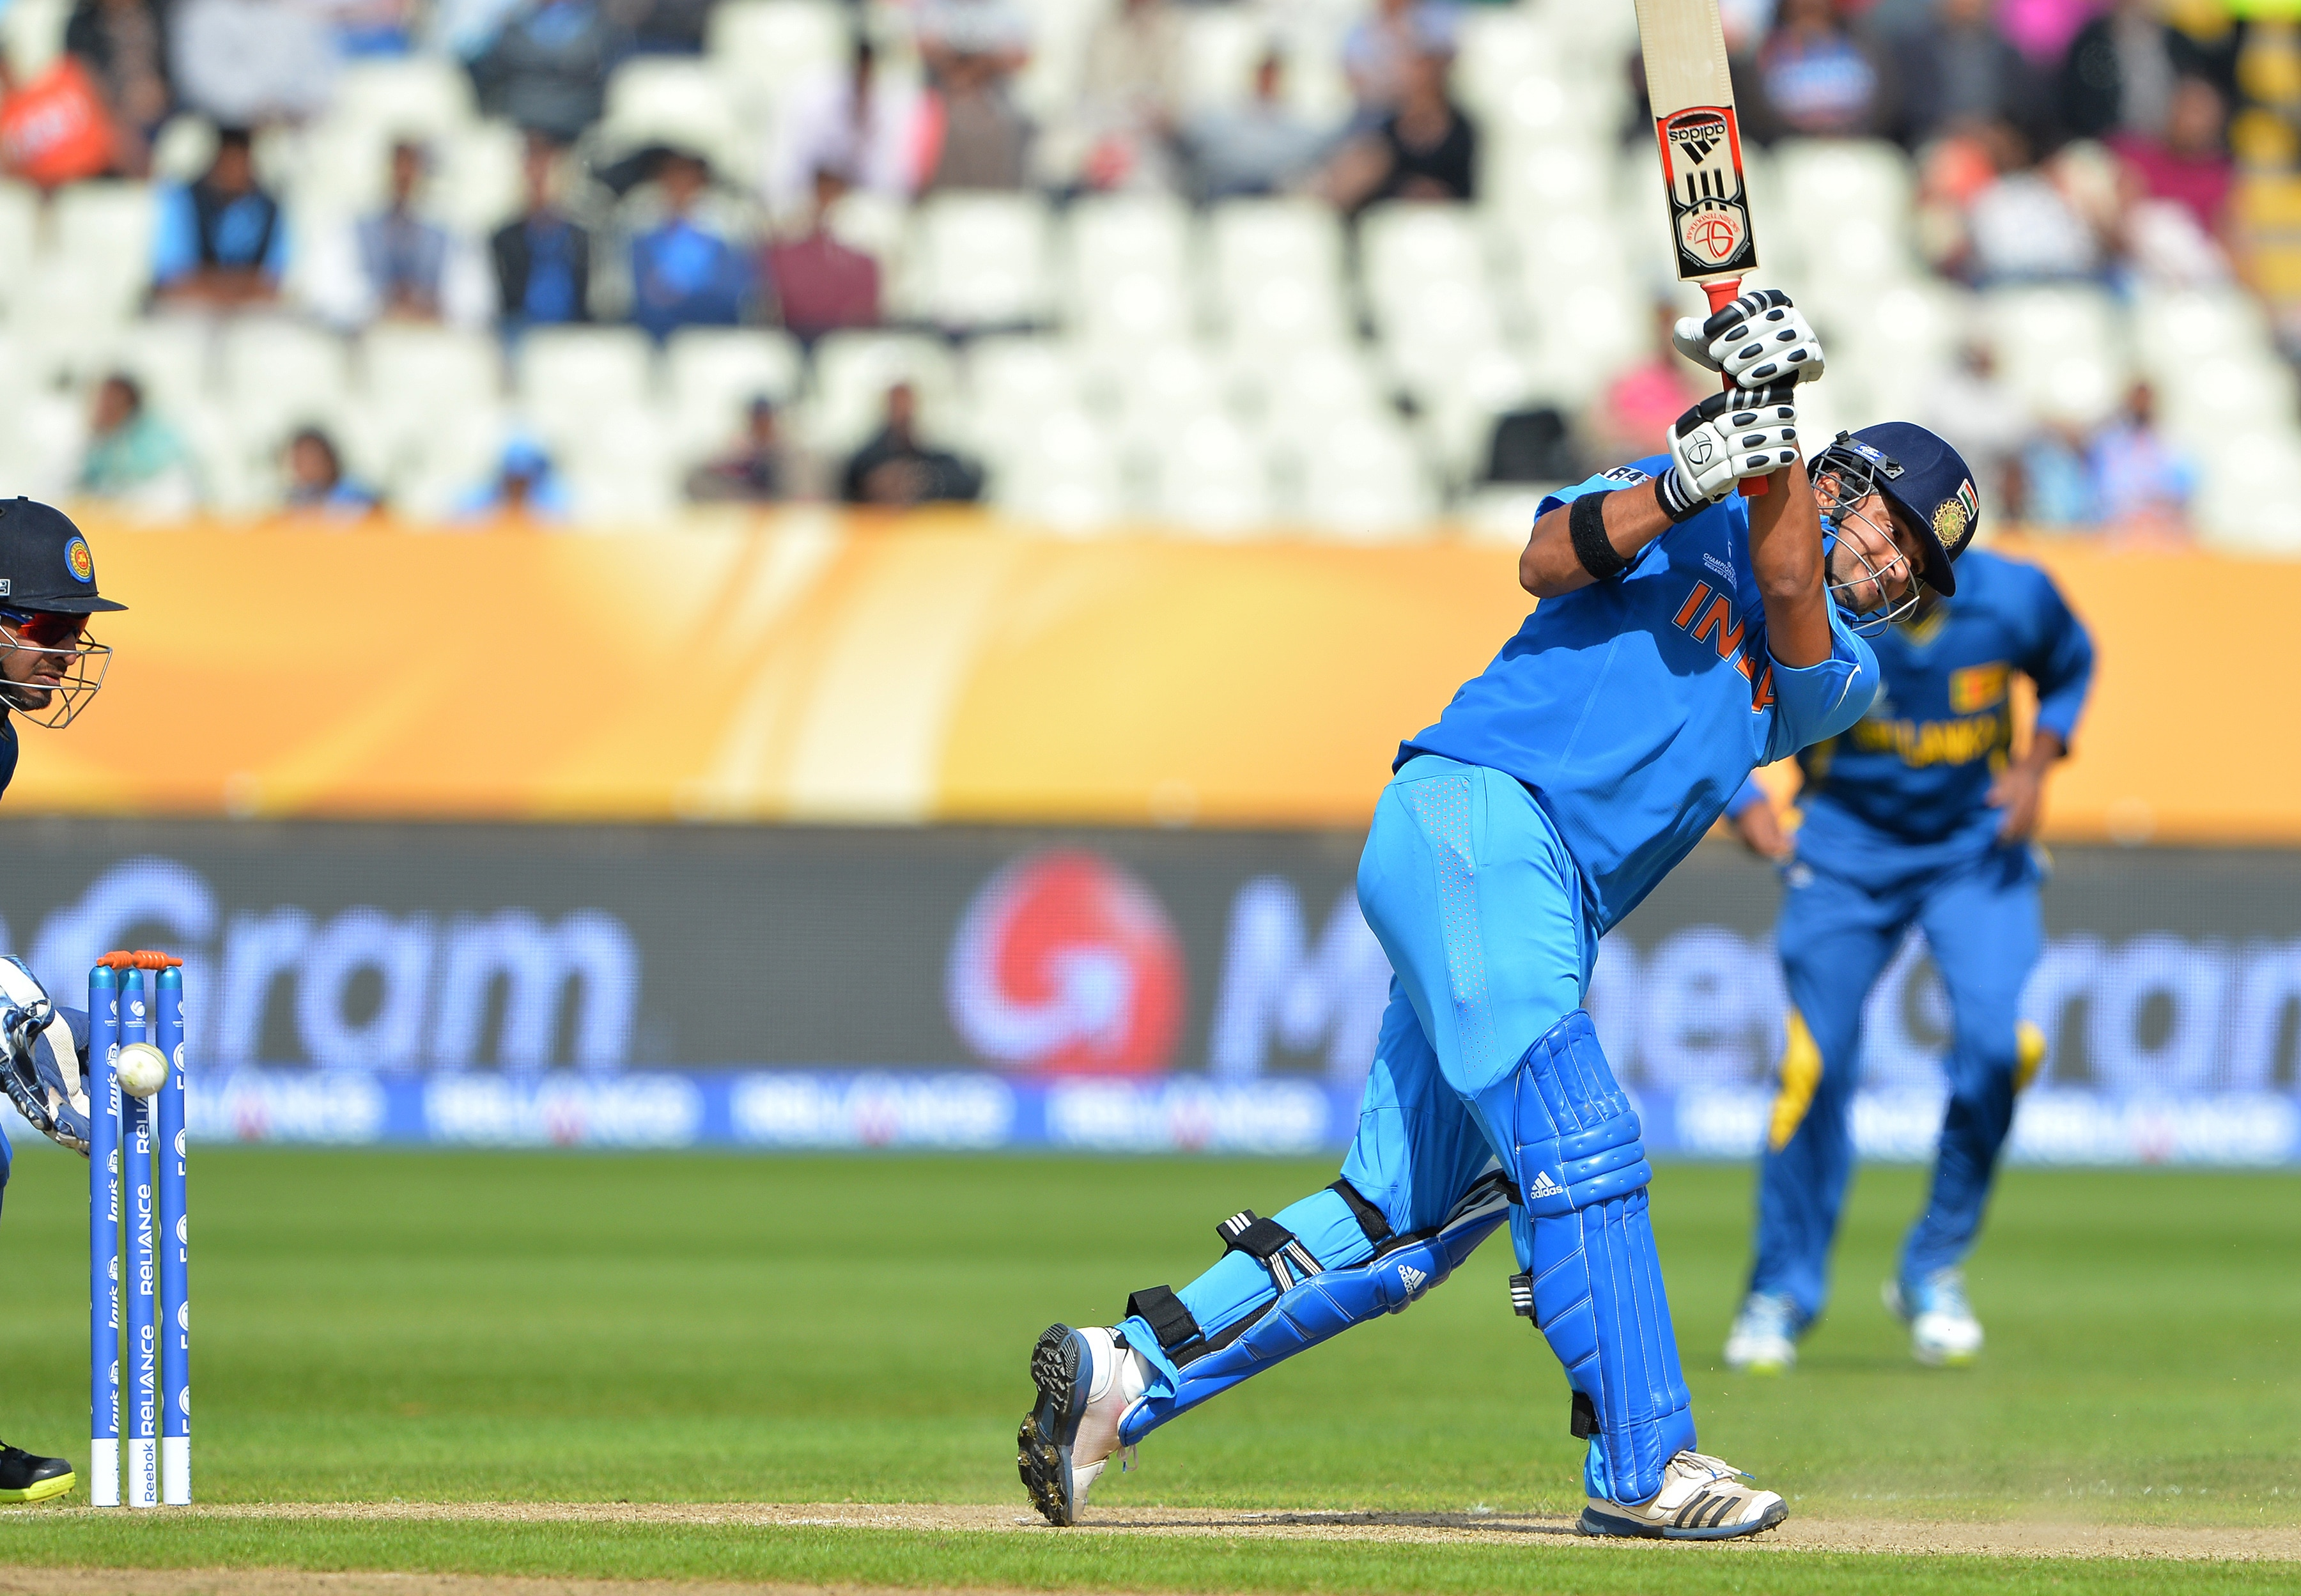 Suresh Raina brought momentum to the Indian run chase as he contributed 34 runs in a 48-run stand with Virat Kohli against Sri Lanka at Edgbaston, Birmingham. Raina's 31-ball knock contained four hits to the fence.